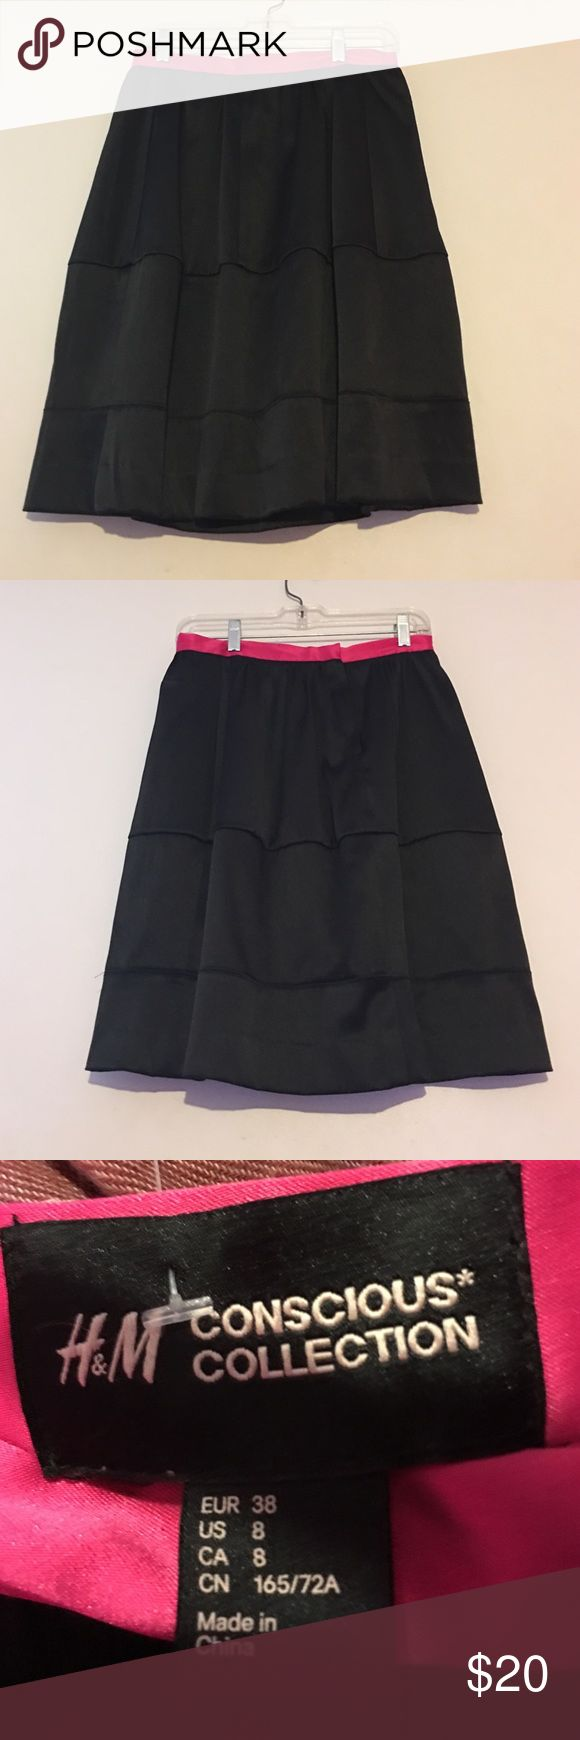 1 DAY SALE H&M conscious collection shirt size 8 Black and pink shirt, gorgeous skirt H&M Skirts